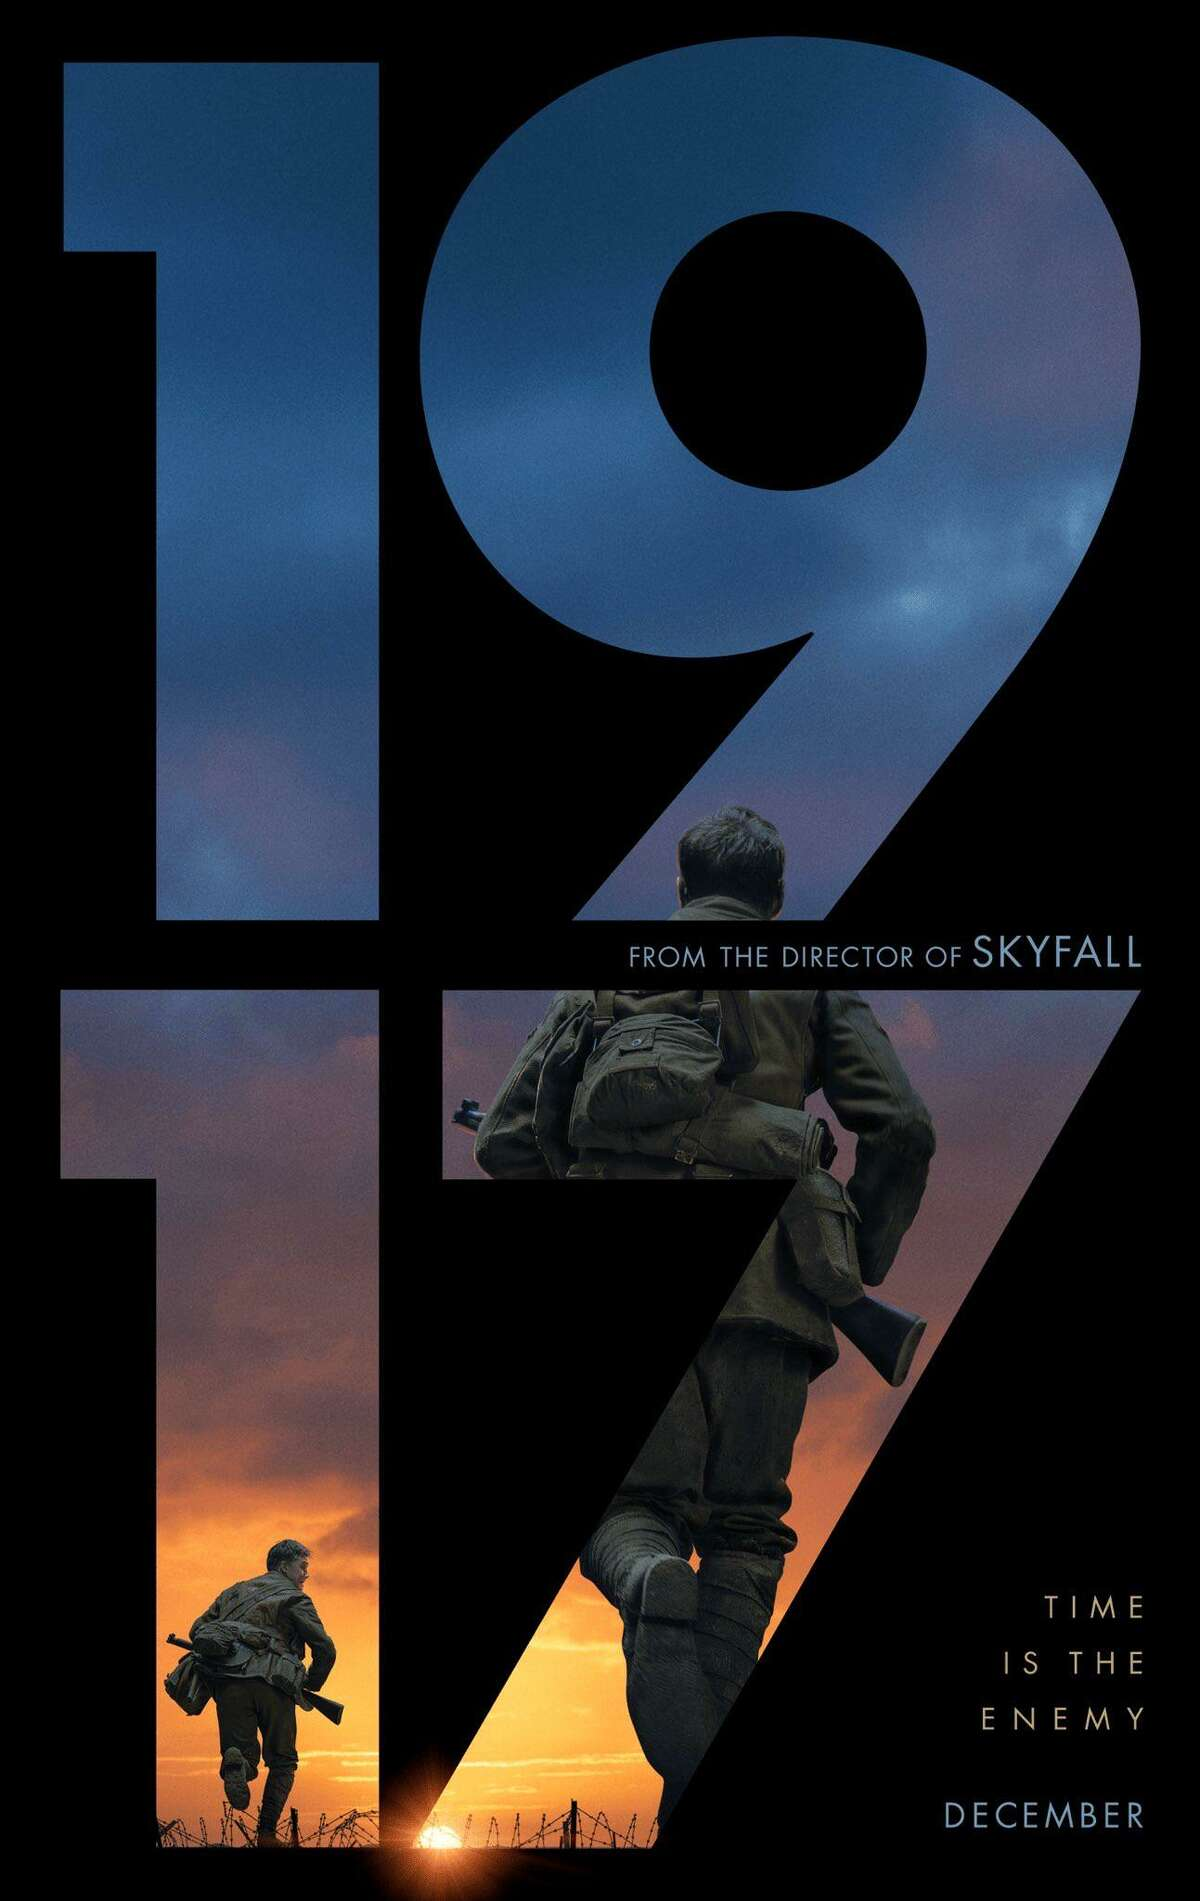 Ten Nominations (Best Picture, Best Director, Original Screenplay, Production Design, Cinematography, visual effects, Sound Mixing, Sound Editing, Original Score, Makeup and Hair) The World War I epic, which tells a story in real-time through the appearance of a single, unedited take, isstill playing in theaters.